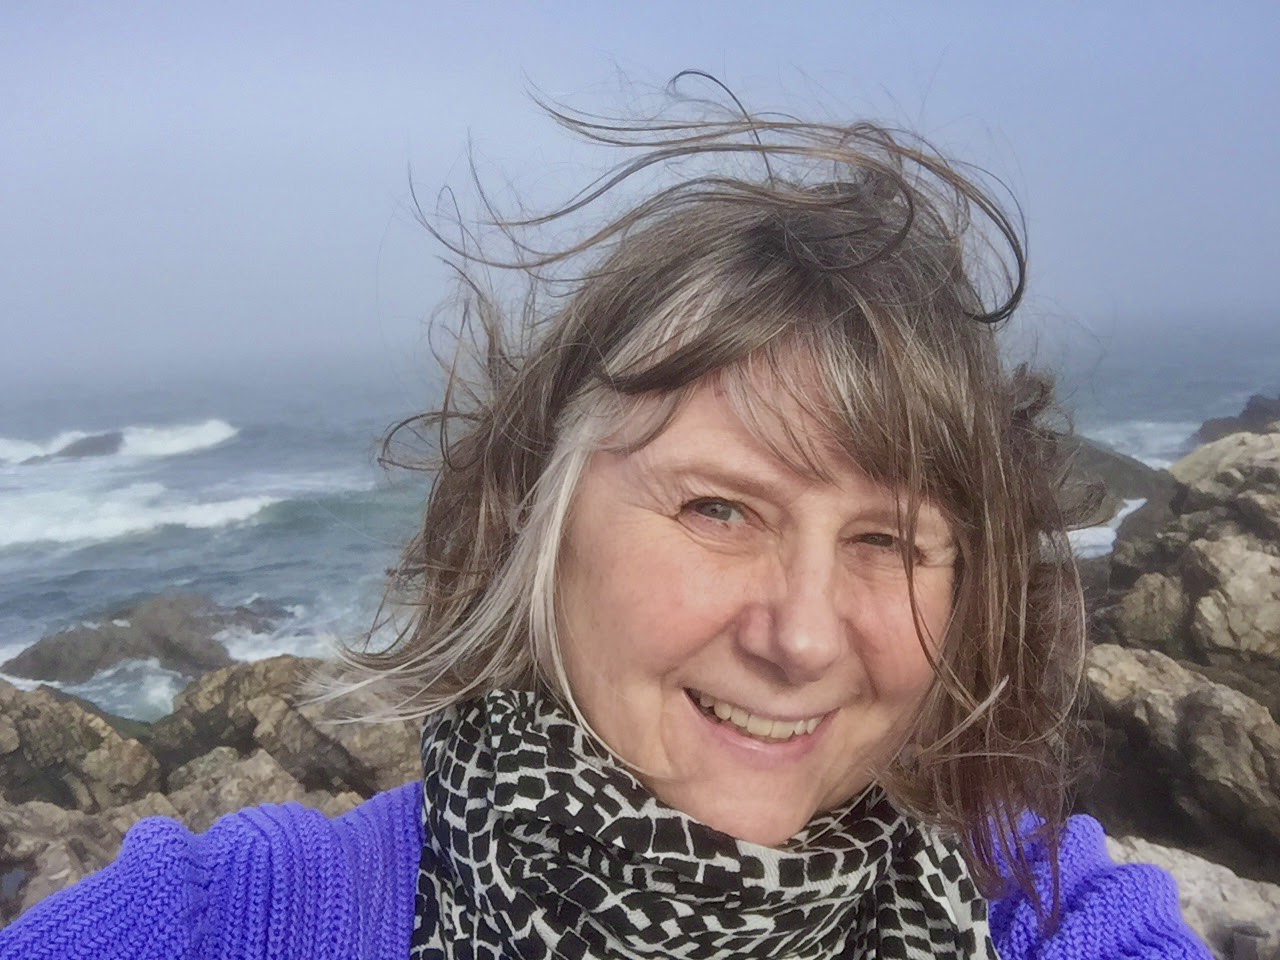 jill waterman, a photographer and writer for b&h photo takes a windy, smiling selfie on some rocks with a stormy ocean behind her.